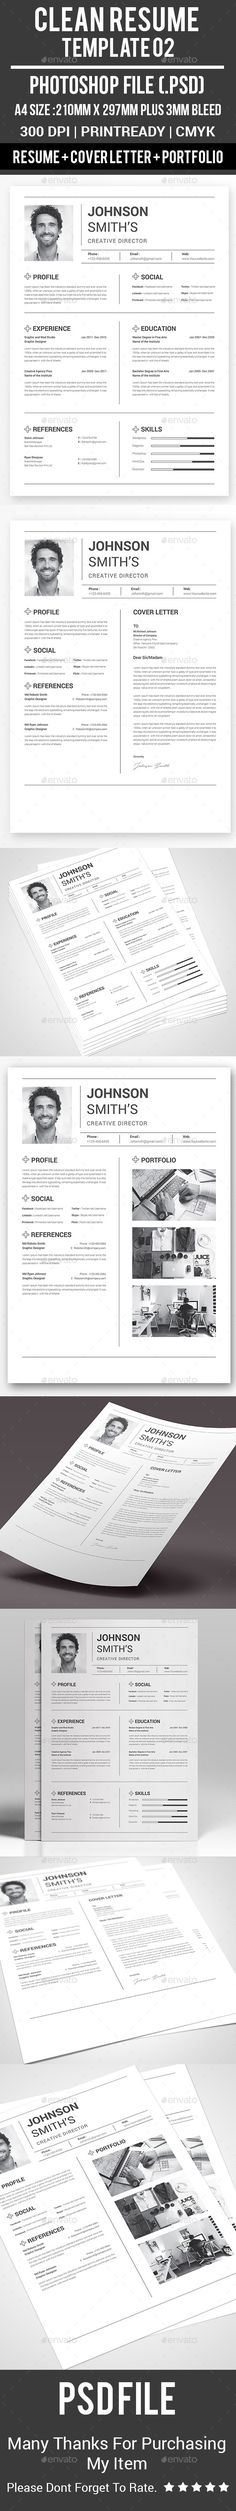 81 Best Resume images | Creative resume, Resume cv, Resume Design